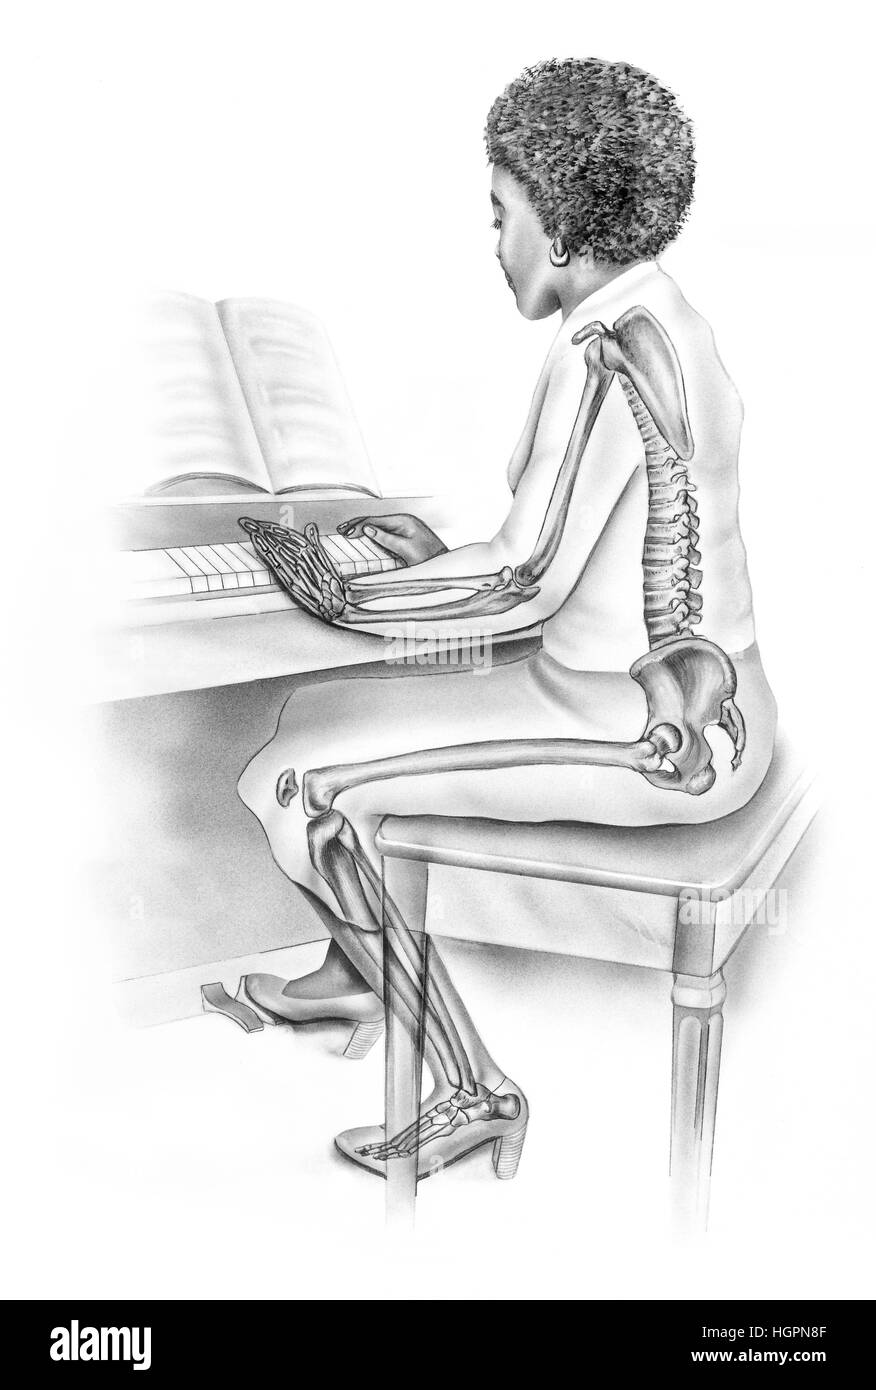 Women\'s Anatomy in Everyday Life - Skeletal Structure of Woman Stock ...